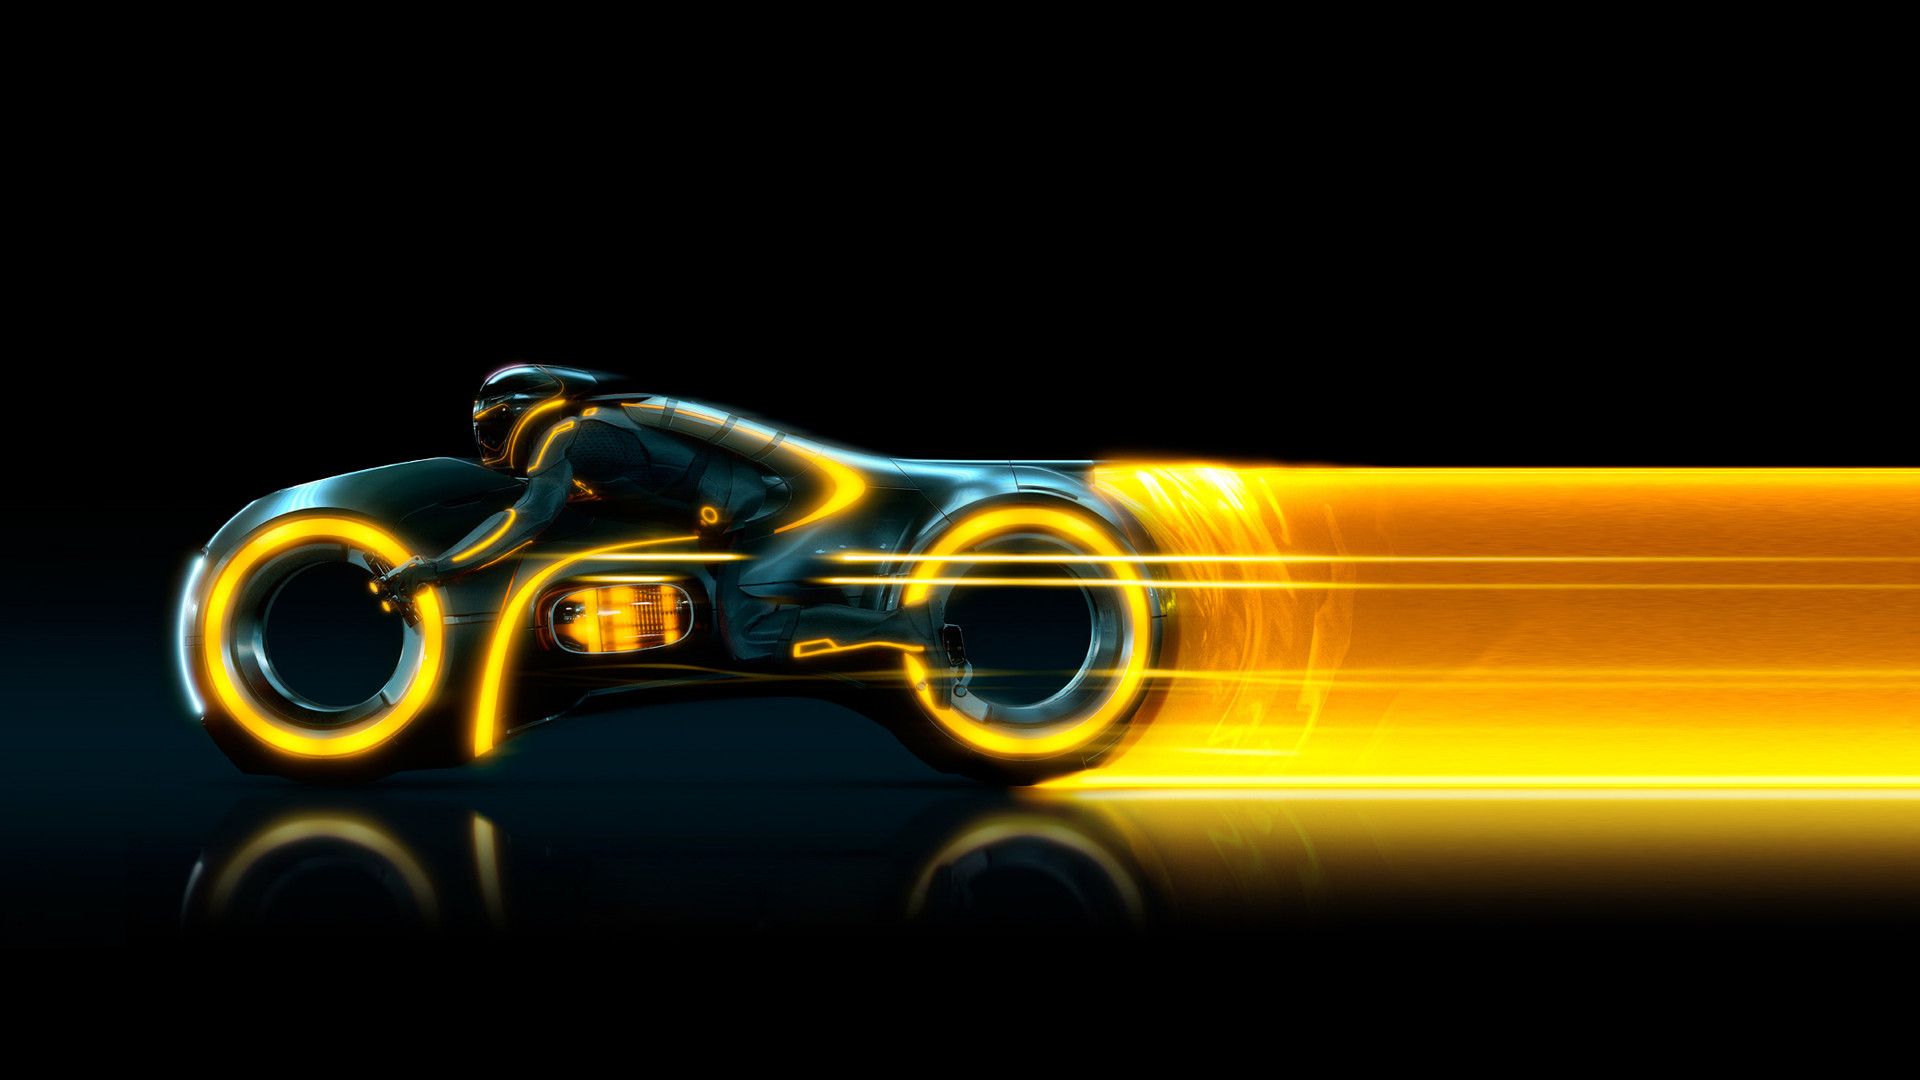 1920x1080 Tron Legacy Background Imgur 1920×1080 Tron Legacy Backgrounds (42  Wallpapers) | Adorable